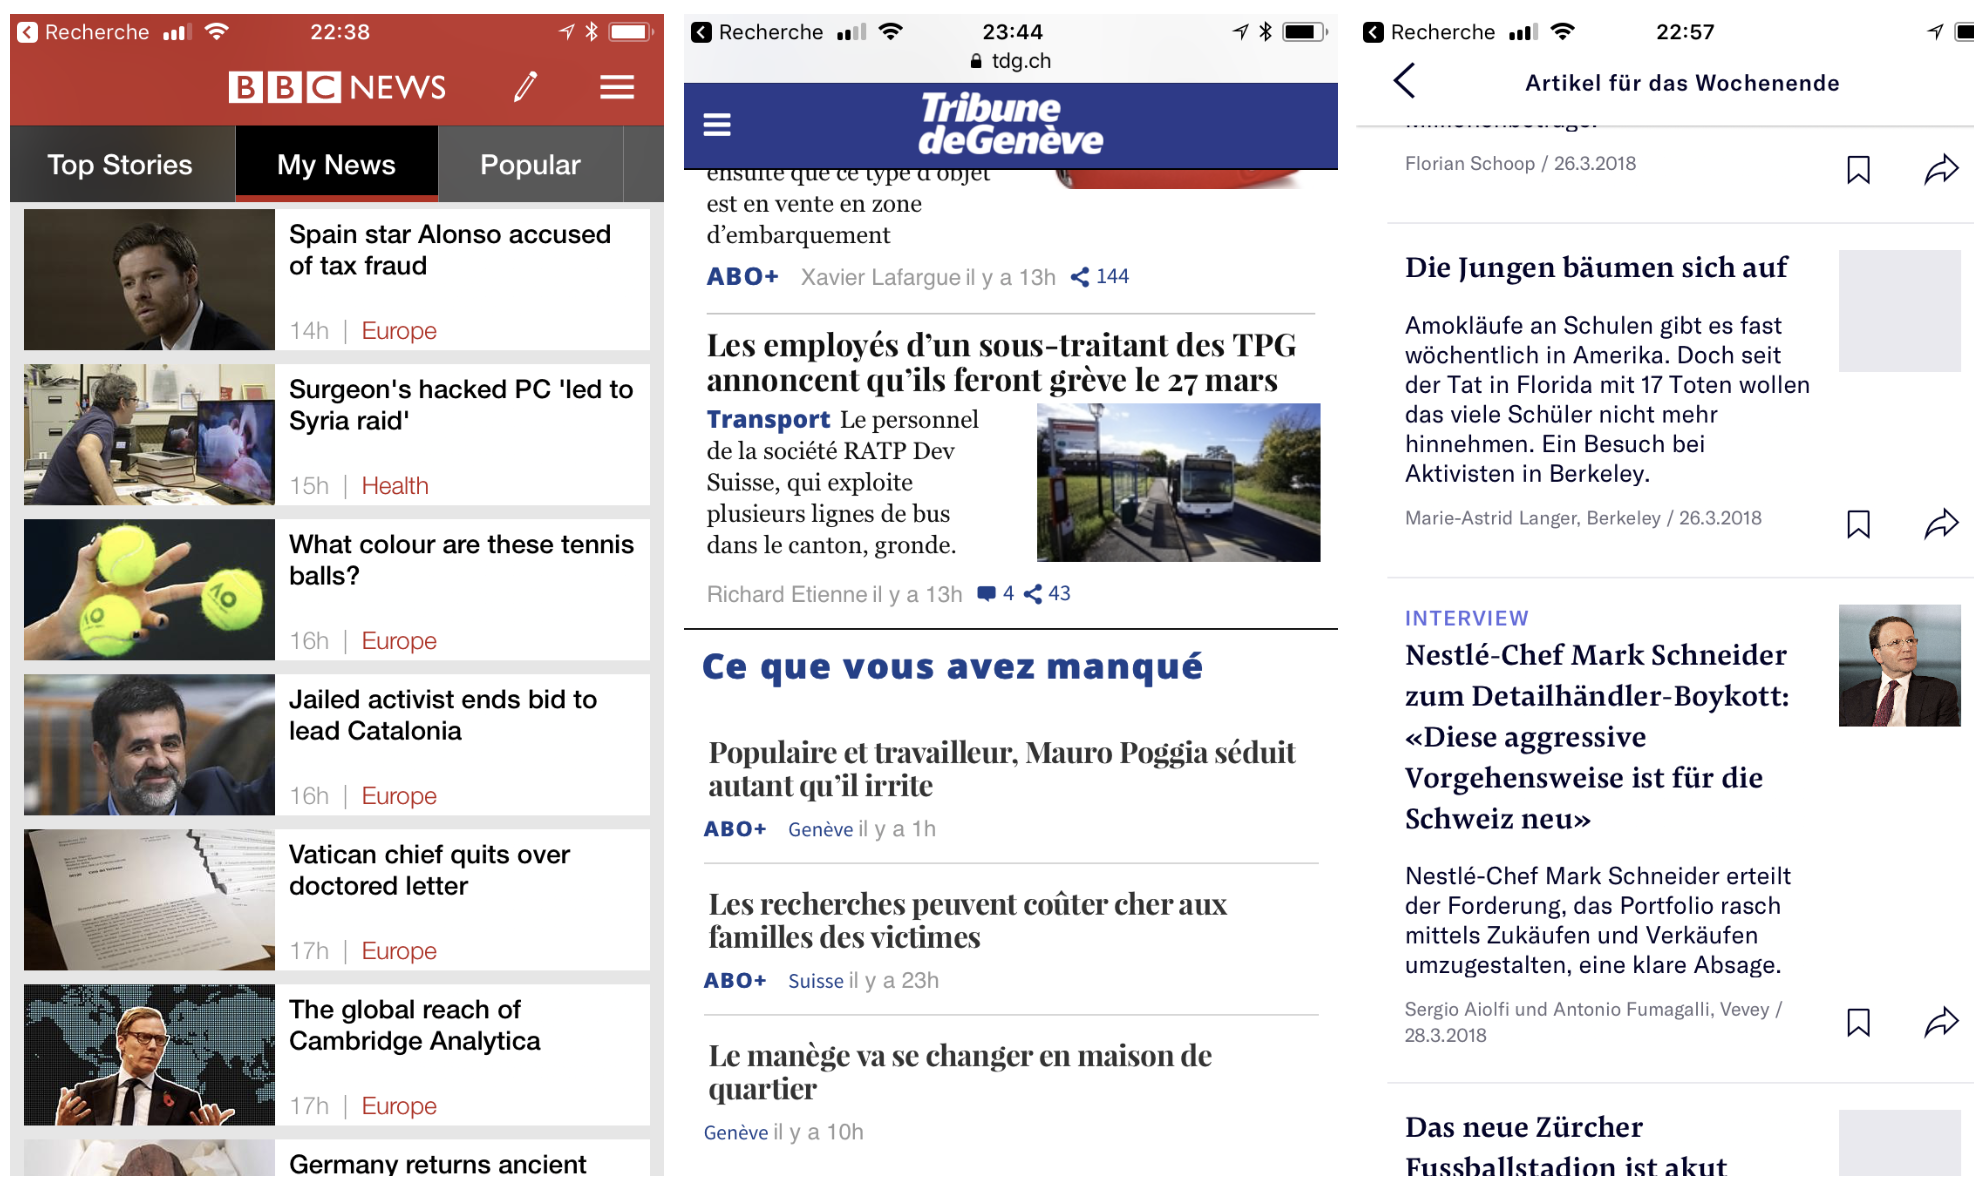 """1. BBC app with """"My News"""" feed ┆2. Tamedia's """"Flint"""" personalized recommender that performs 150 percent better than algorithms for the general audience ┆3. NZZ Companion results"""